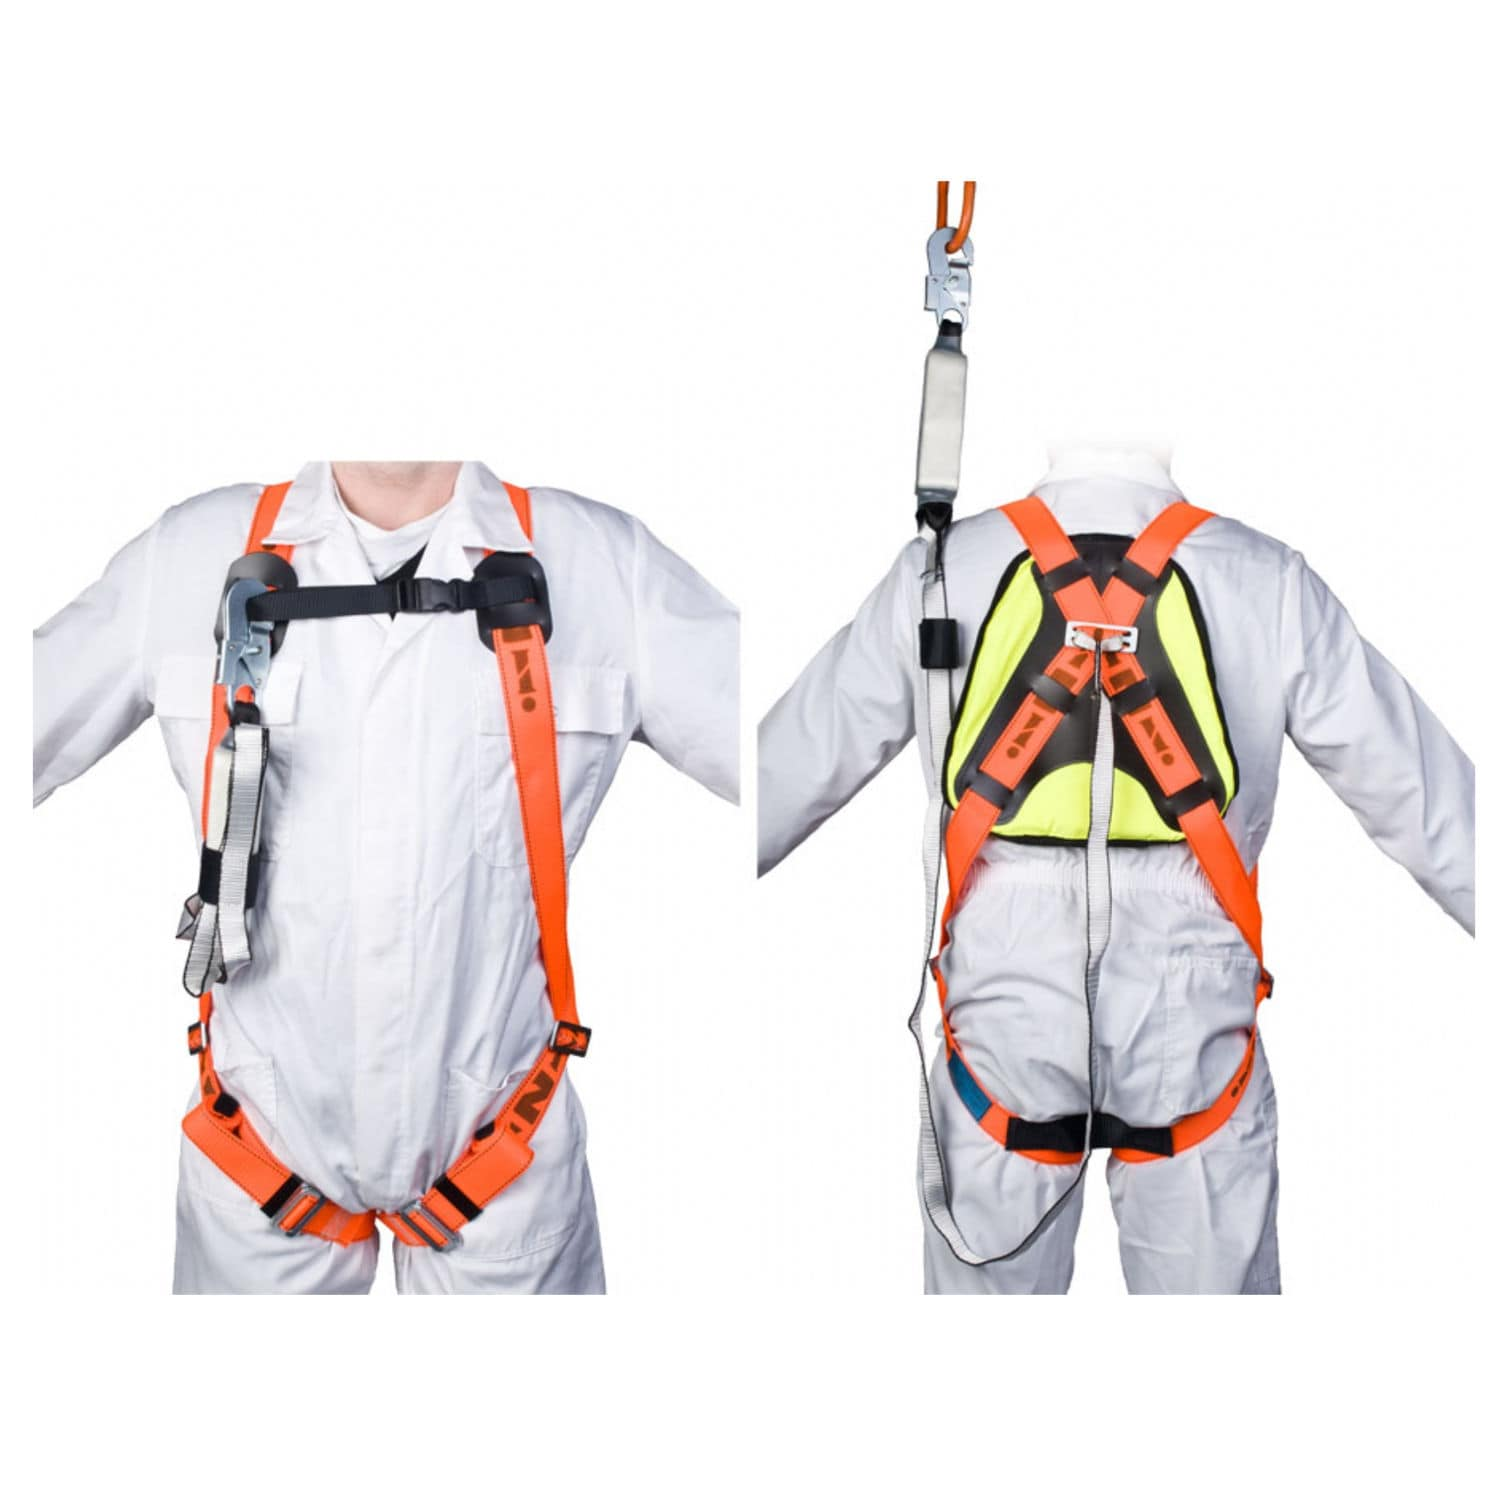 Safety Harness Dorsal Fixation Point Ktp 01 Rema Hollande Bv